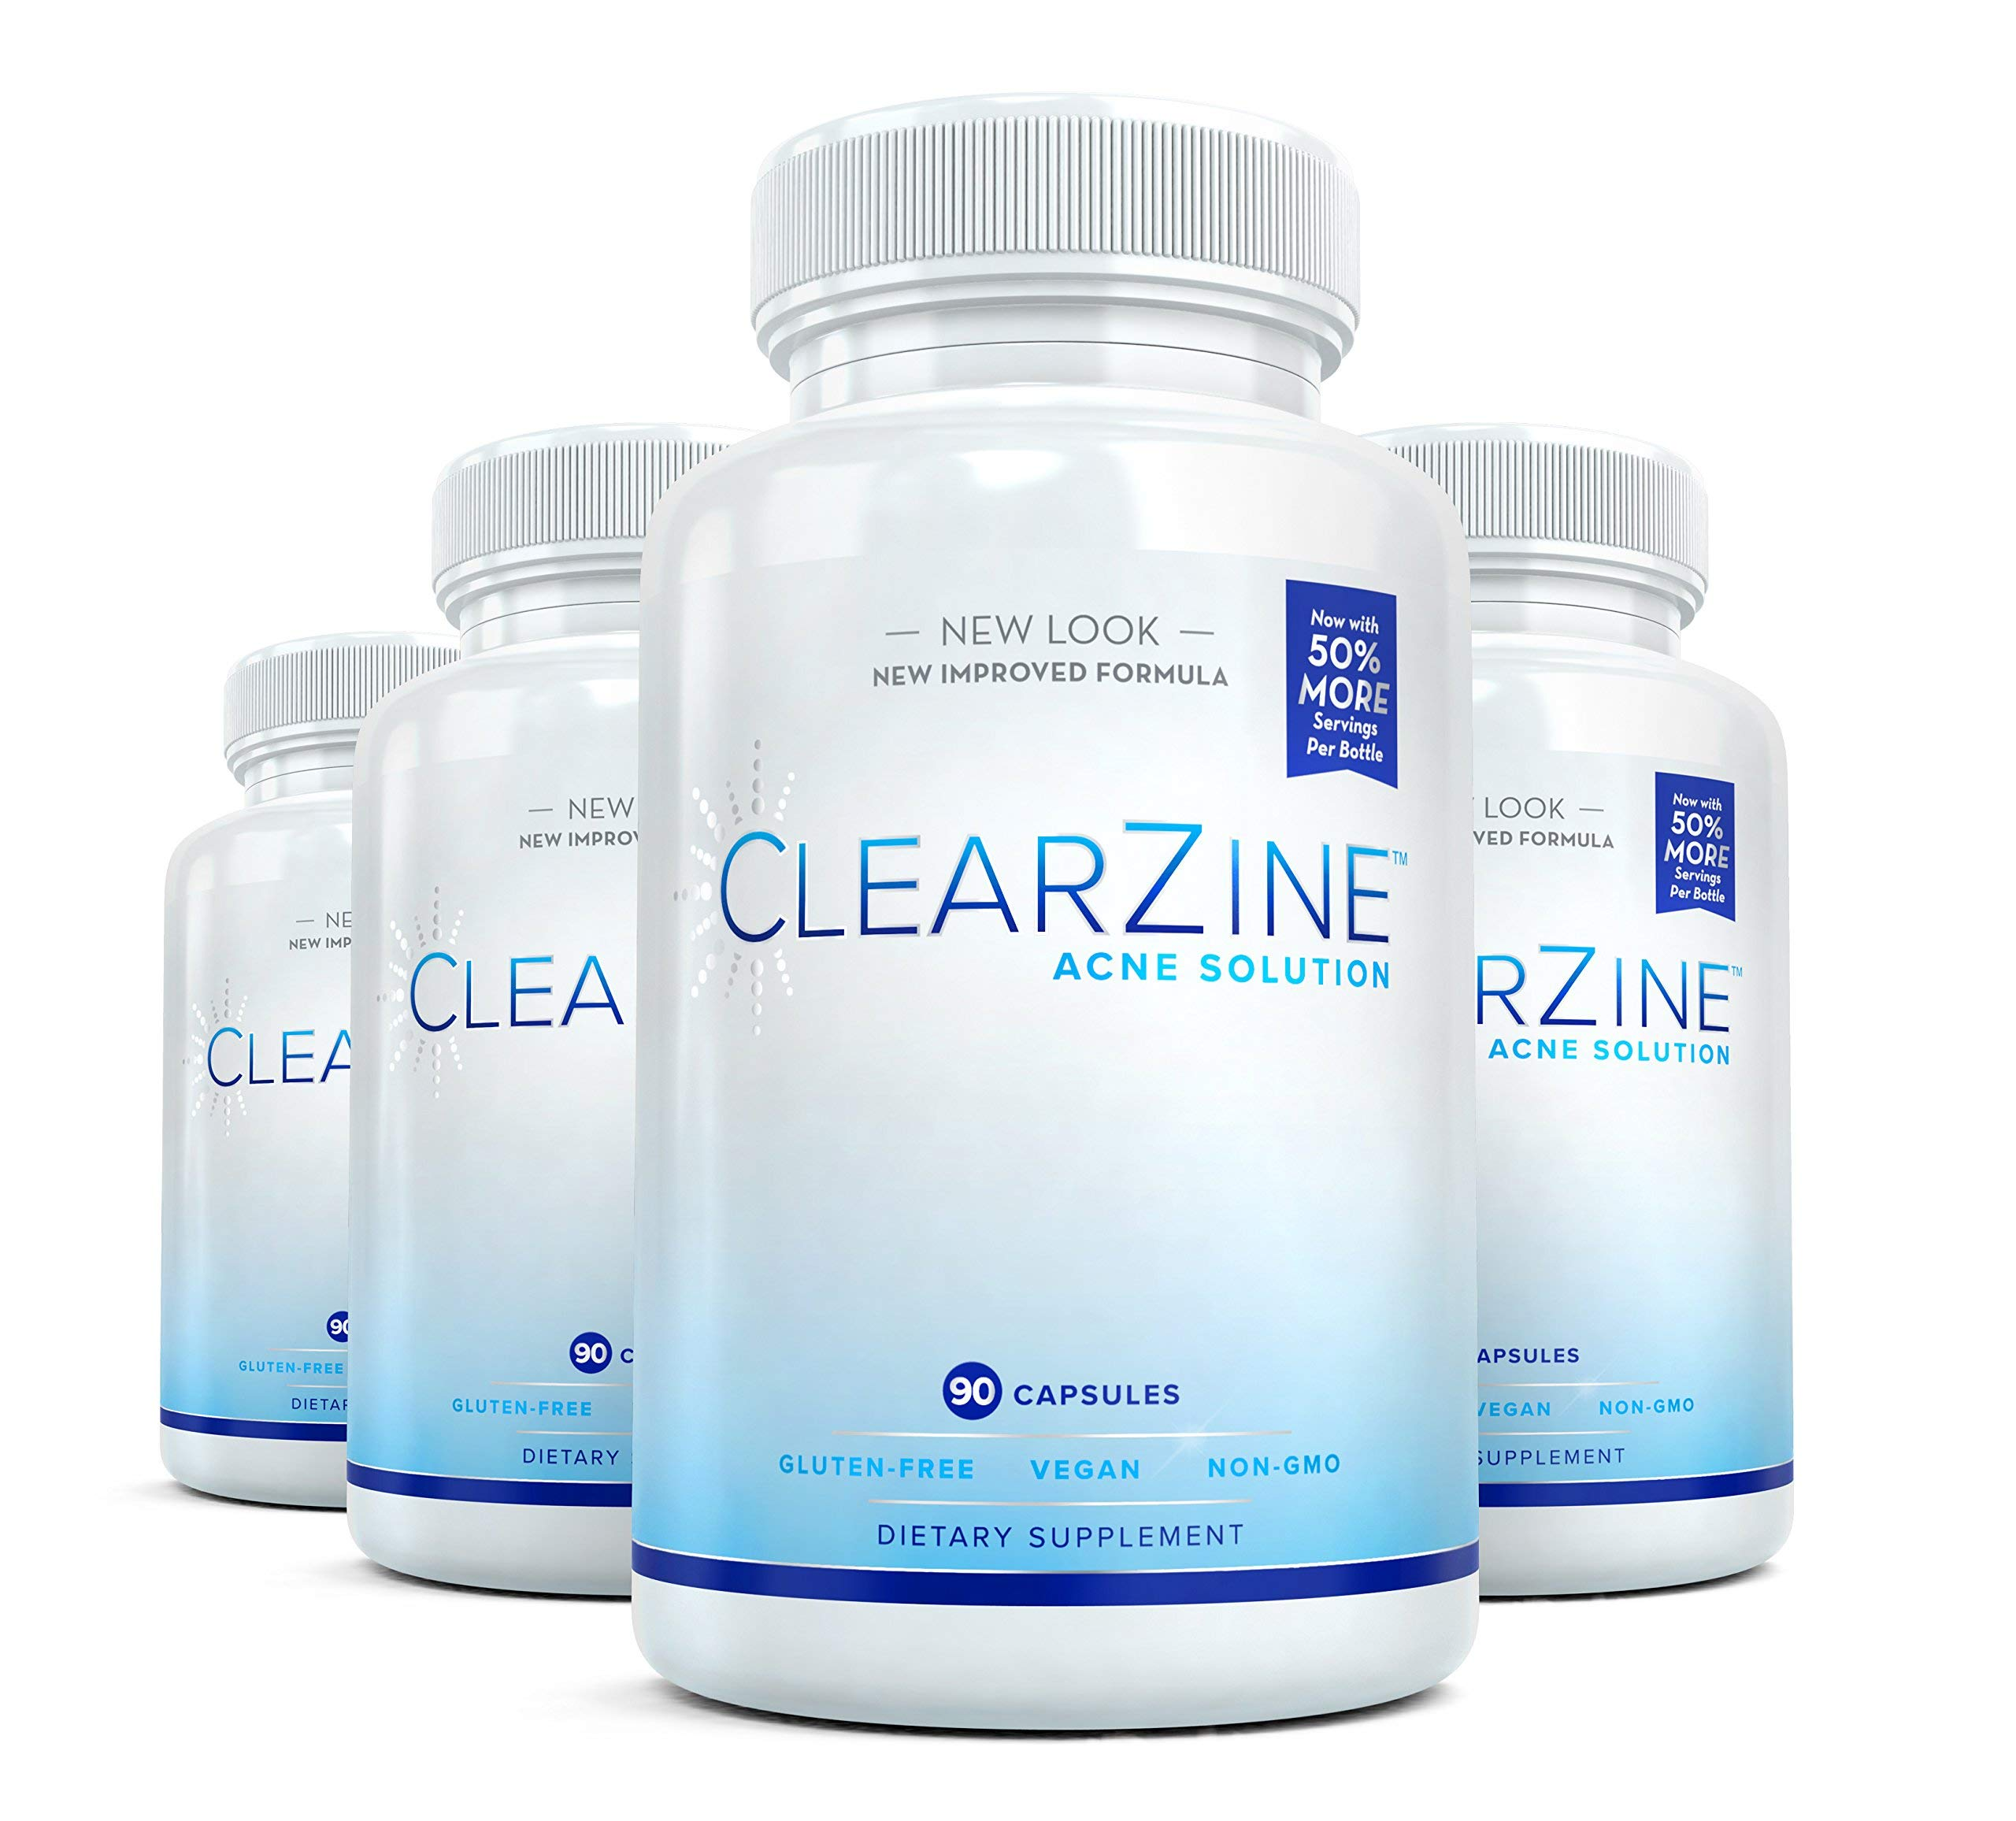 ClearZine Acne Pills for Teens & Adults | Clear Skin Supplement, Vitamins for Hormonal & Cystic Acne | Stop Breakouts, Oily Skin with Milk Thistle, Pantothenic Acid & Zinc, 4 Bottles, 90 Caps Each